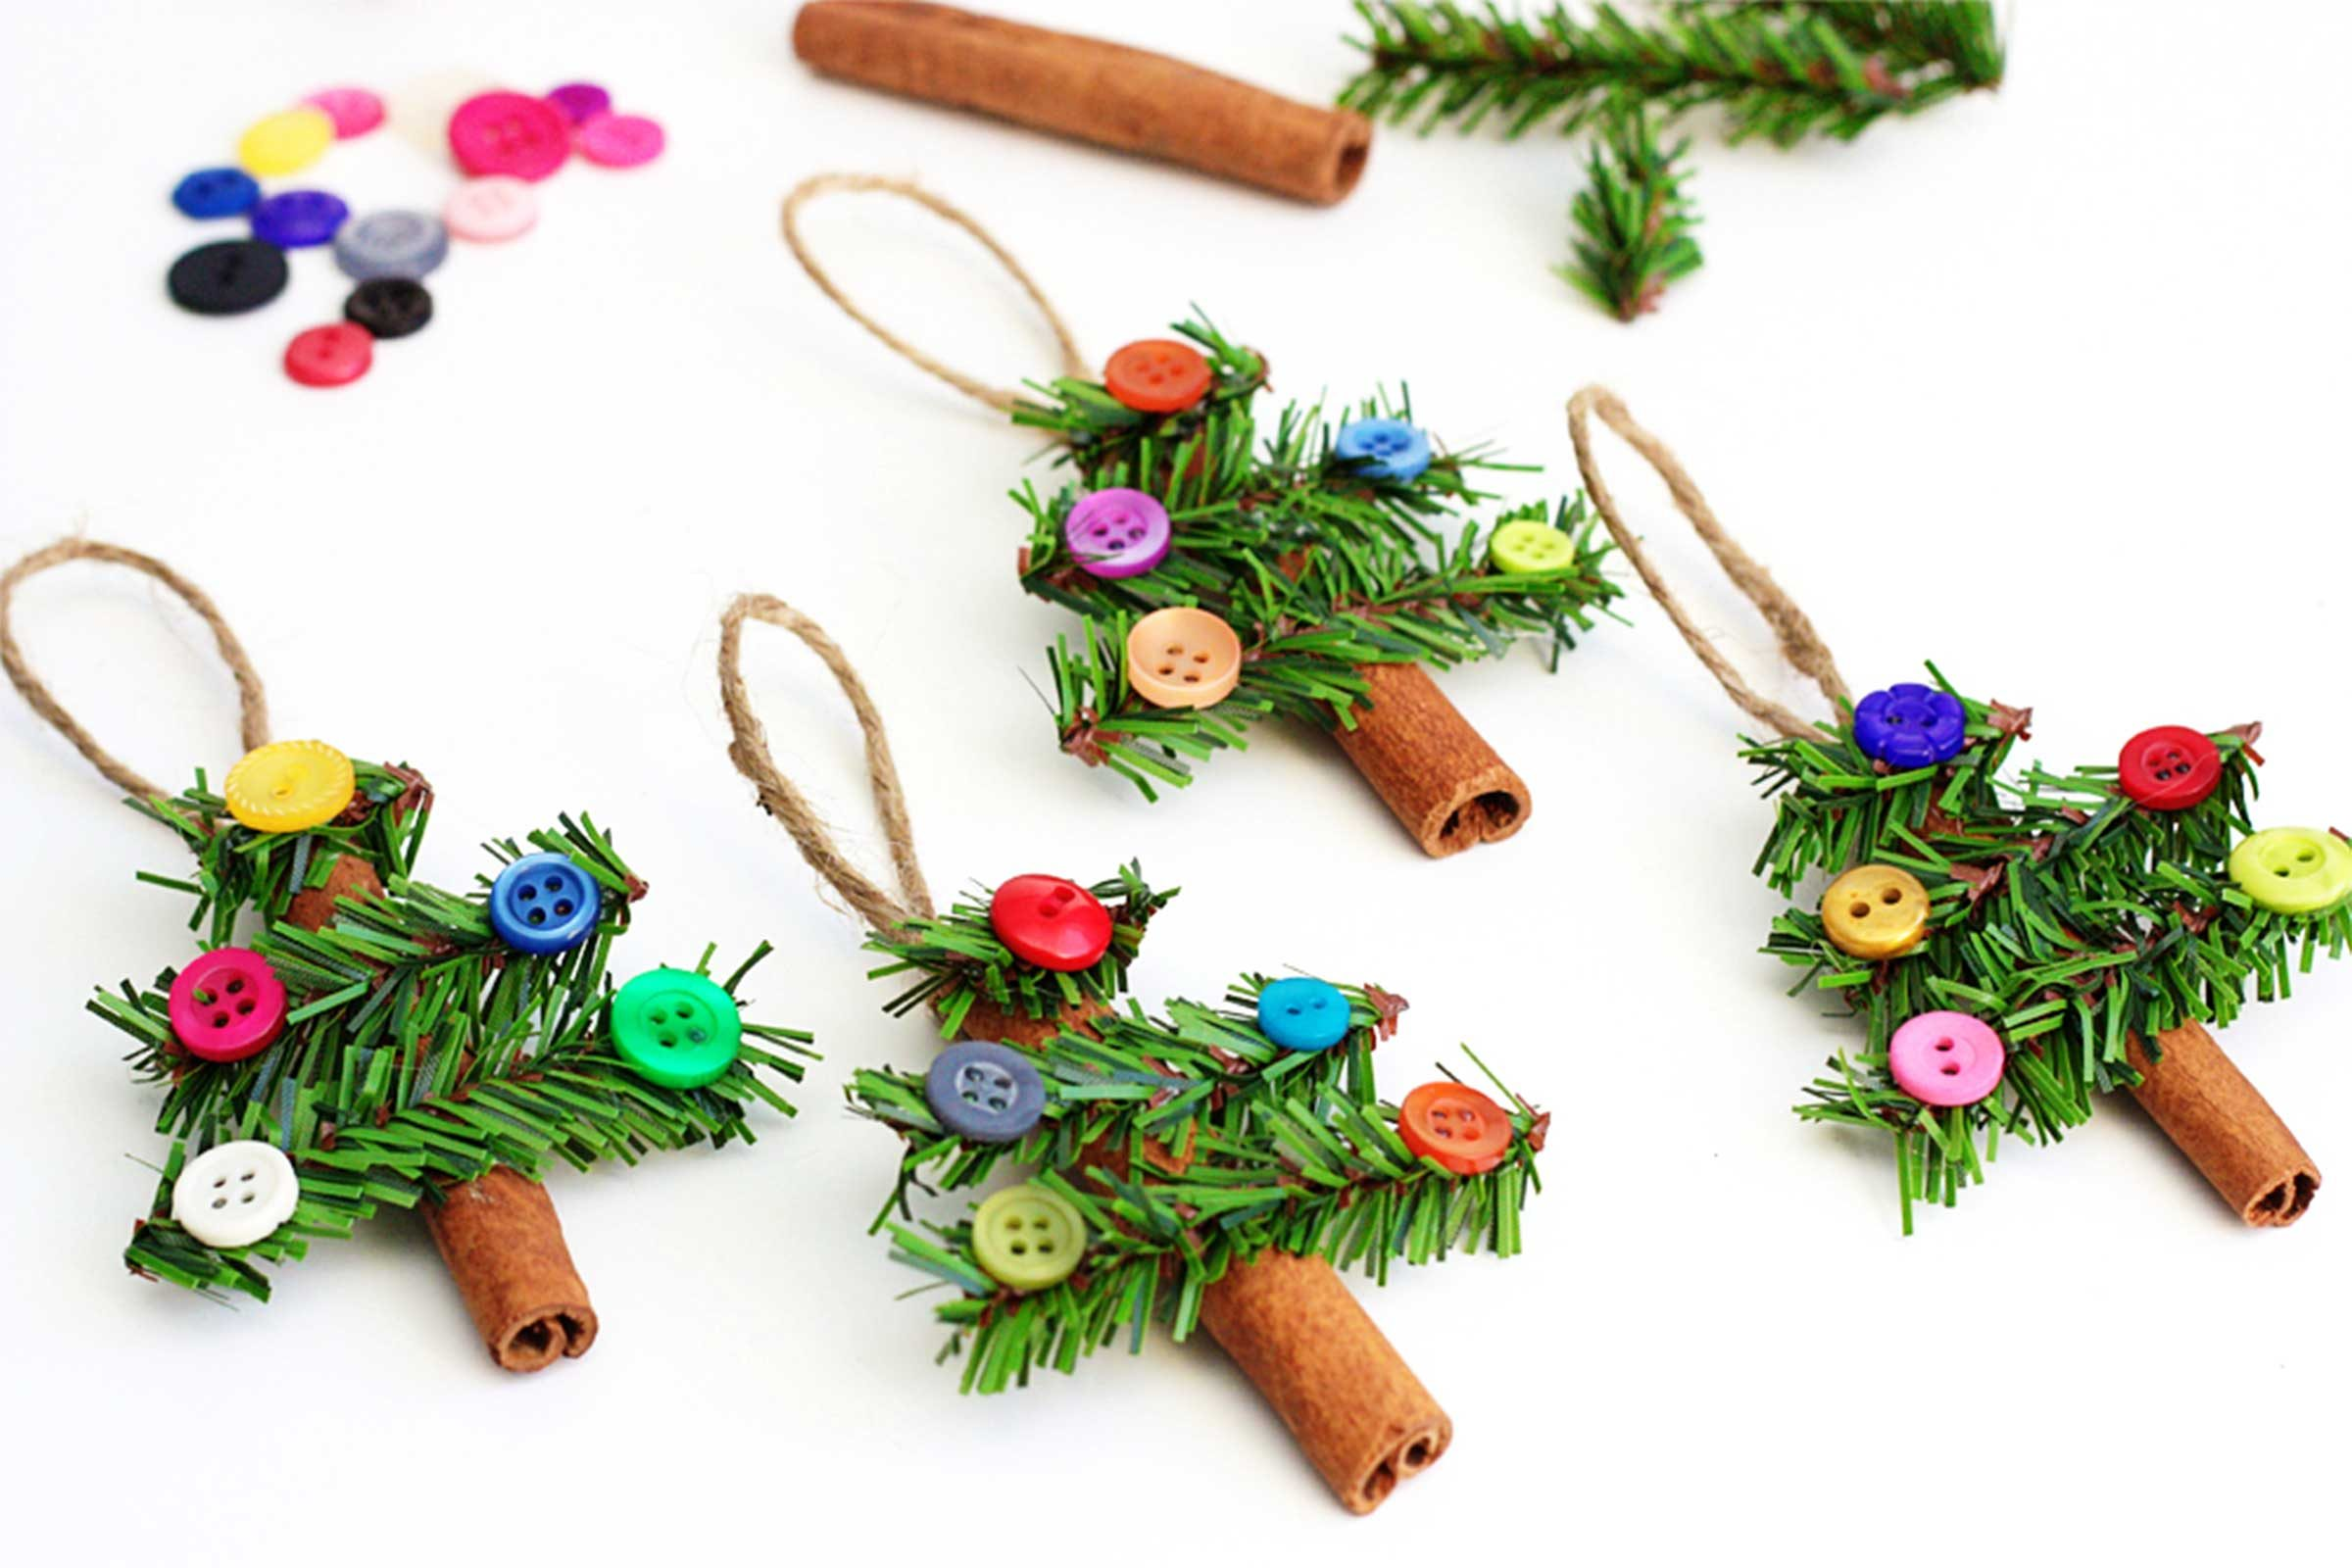 Handmade Christmas Ornaments To Make